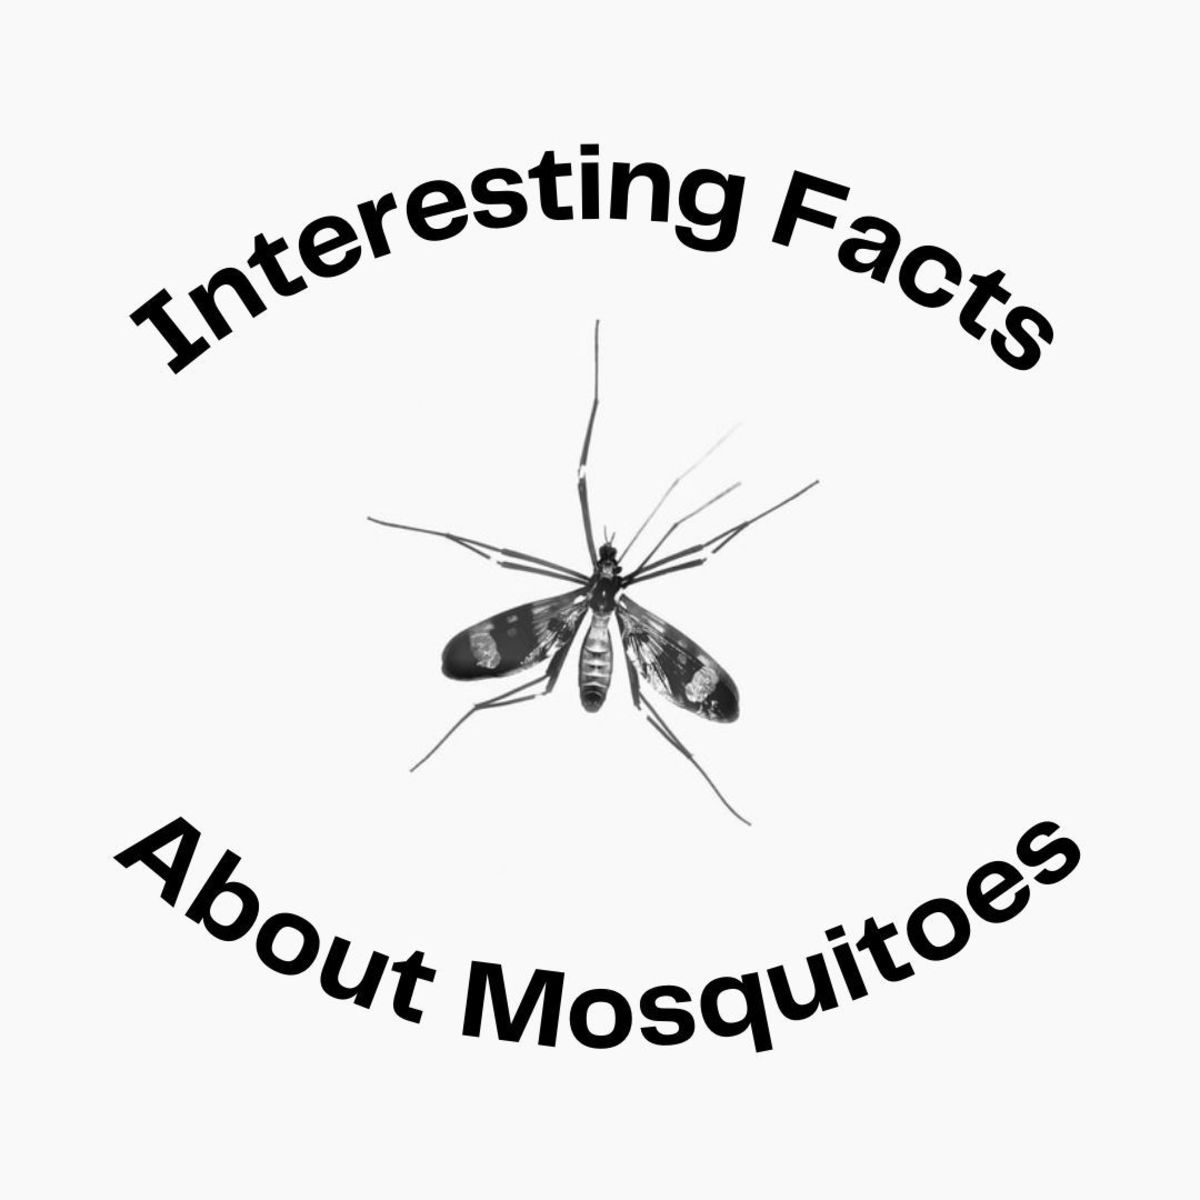 Believe it or not, there is much more to mosquitoes than you think.